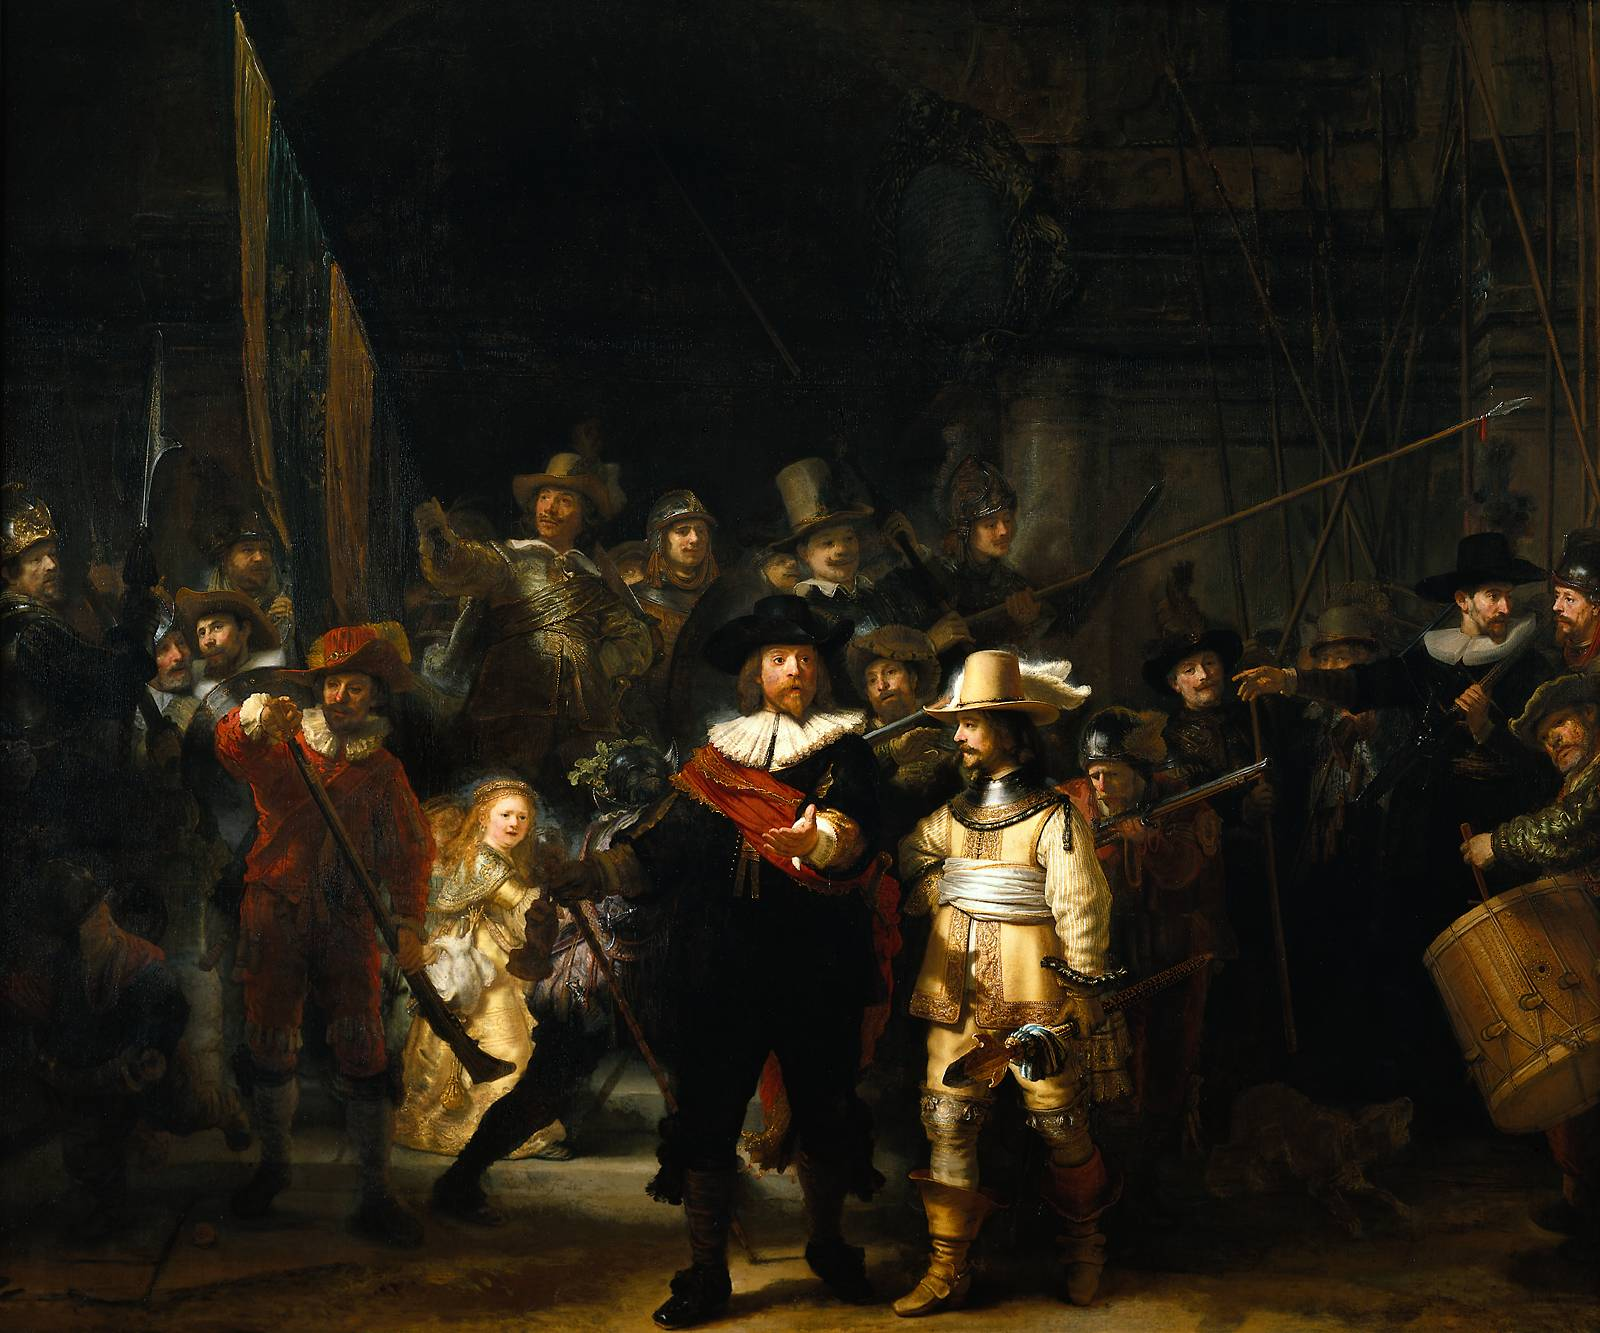 Rembrandt The Night Watch 1642 & W.T.G.A.: Picasso Vs Rembrandt | holditnow Pezcame.Com